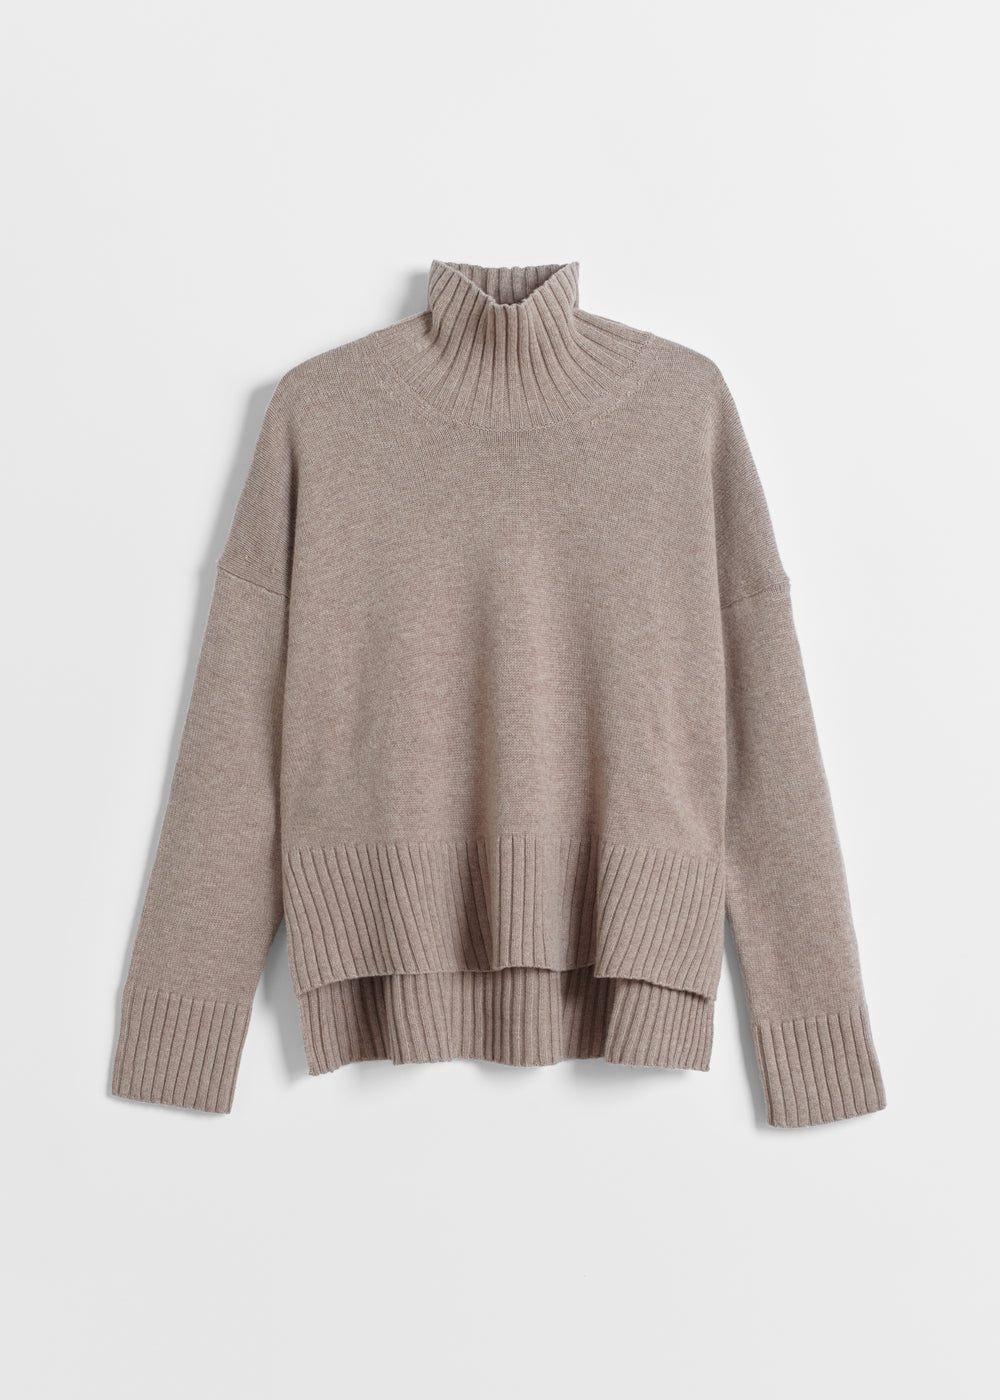 High Neck Sweater in Wool Cashmere - Black in Taupe by Co Collections